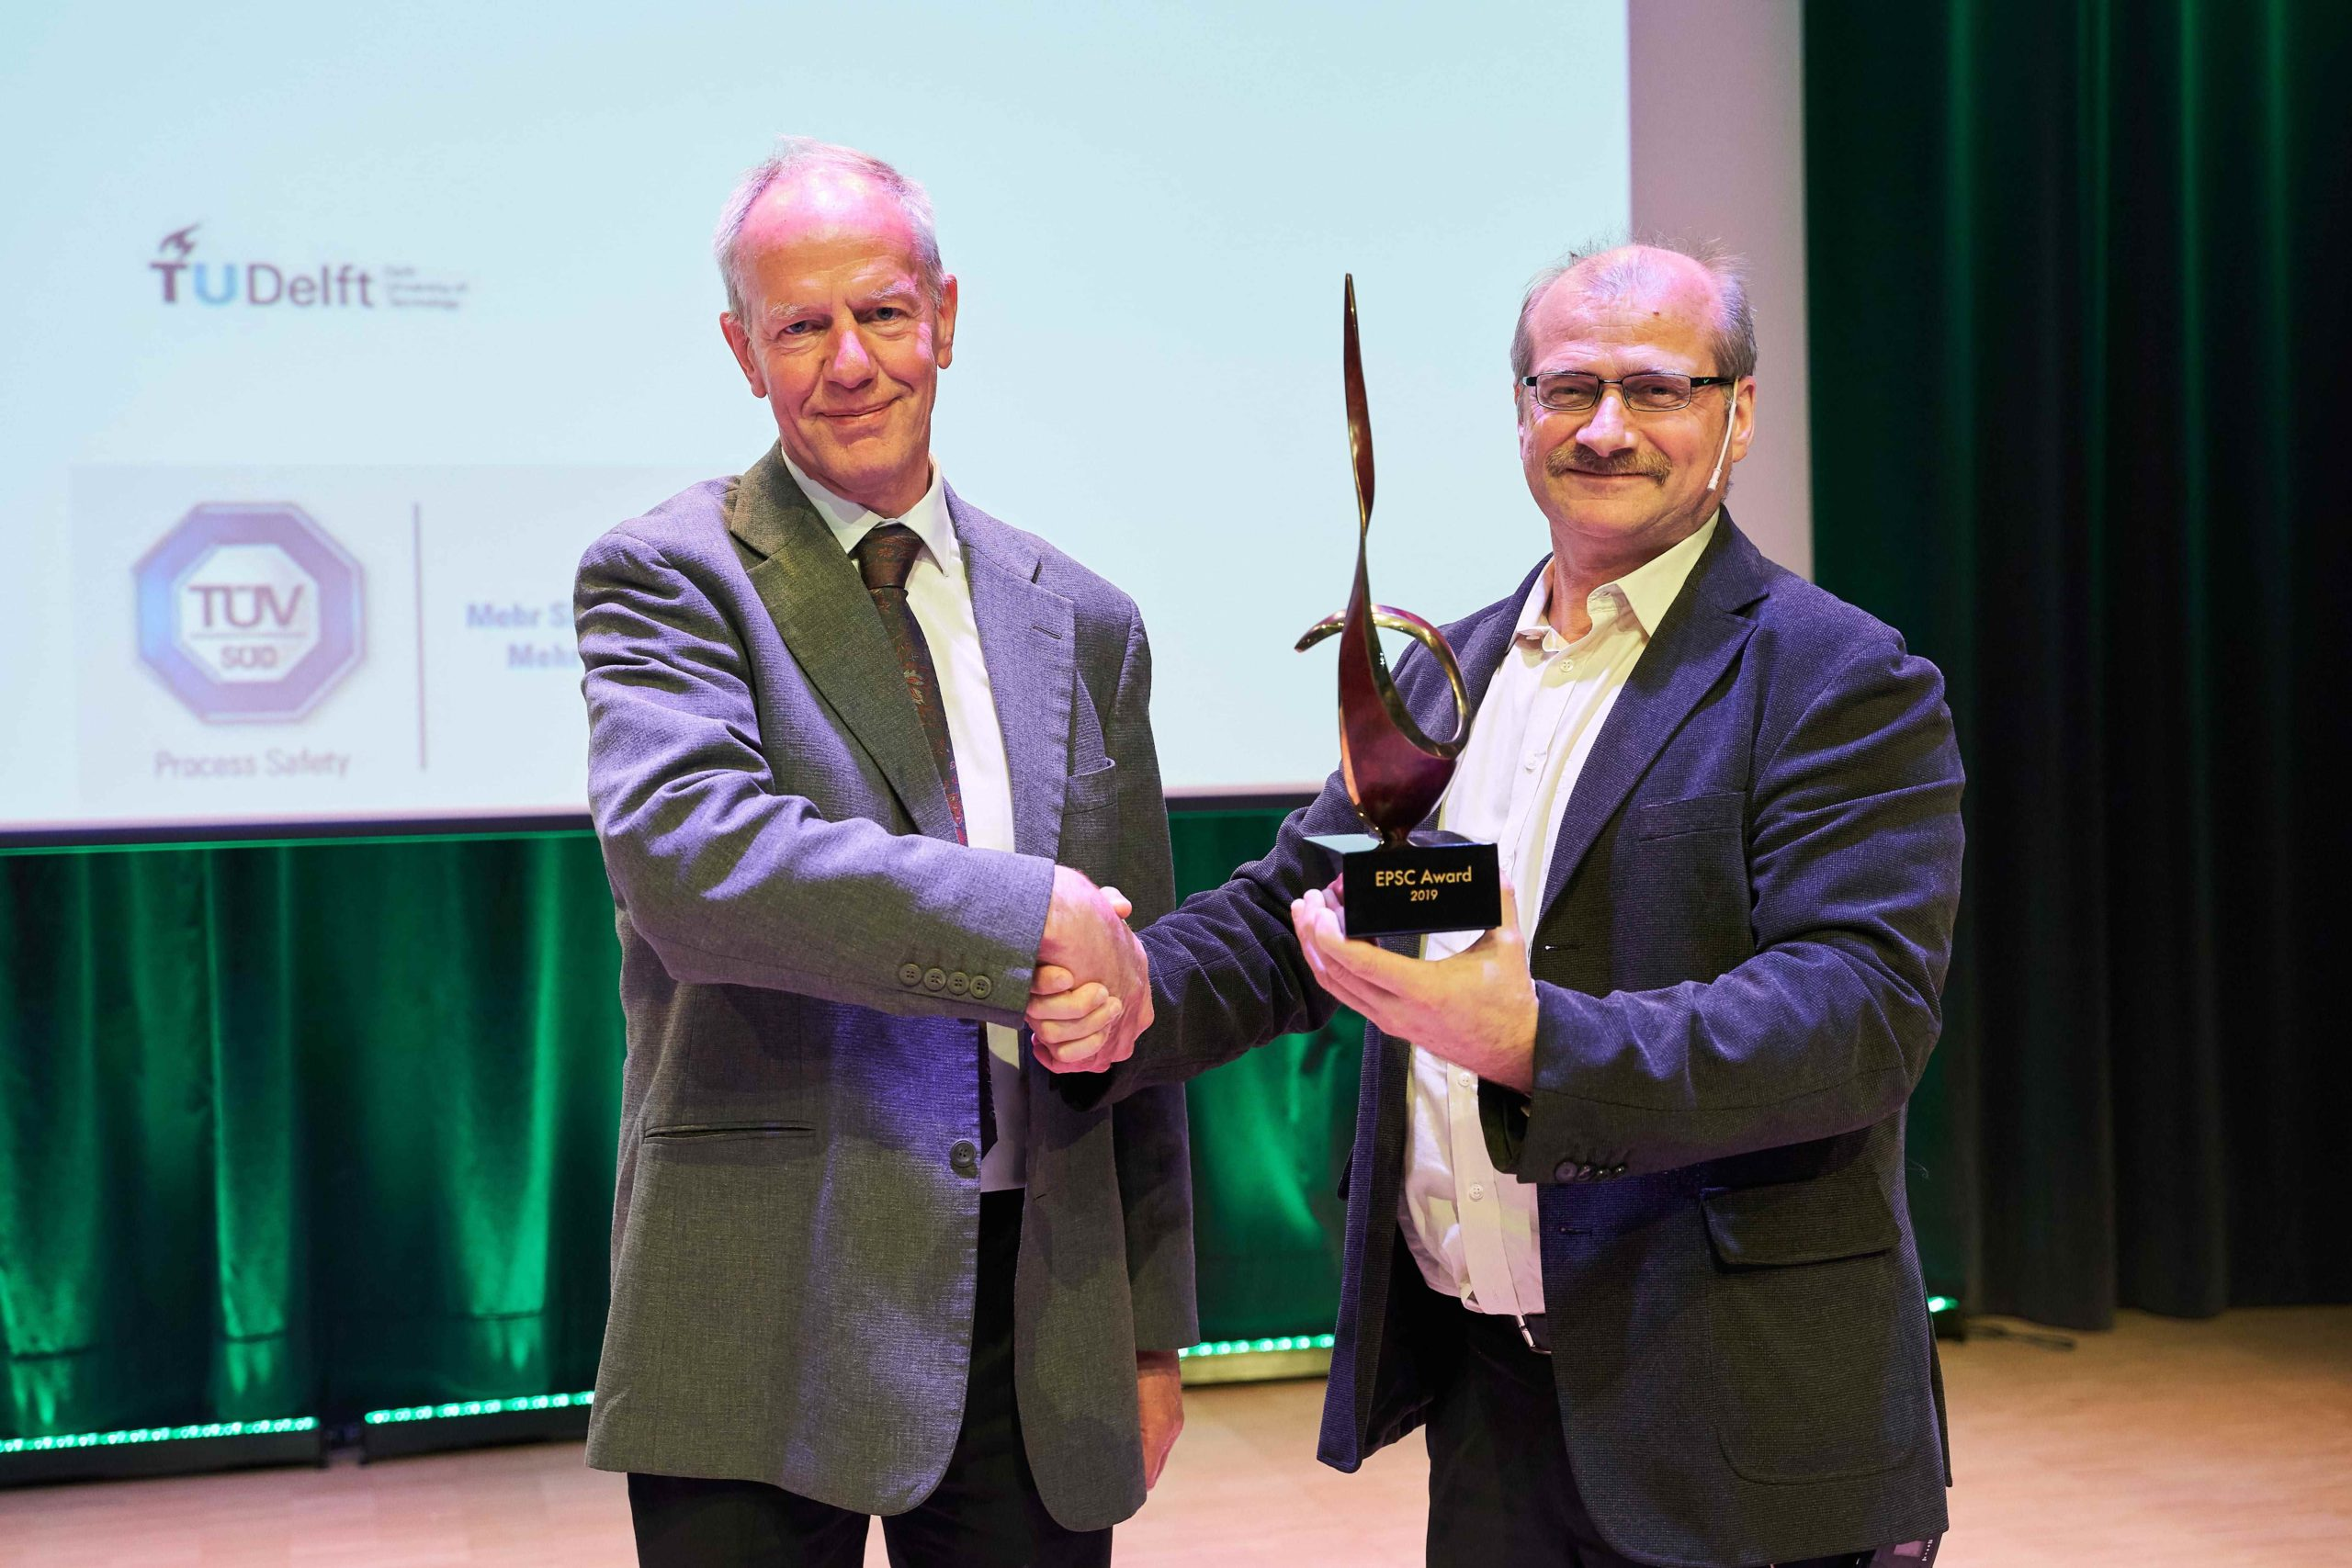 Gexcon's CTO Received the 2019 EPSC Award at the 16th International Symposium on Loss Prevention and Safety Promotion